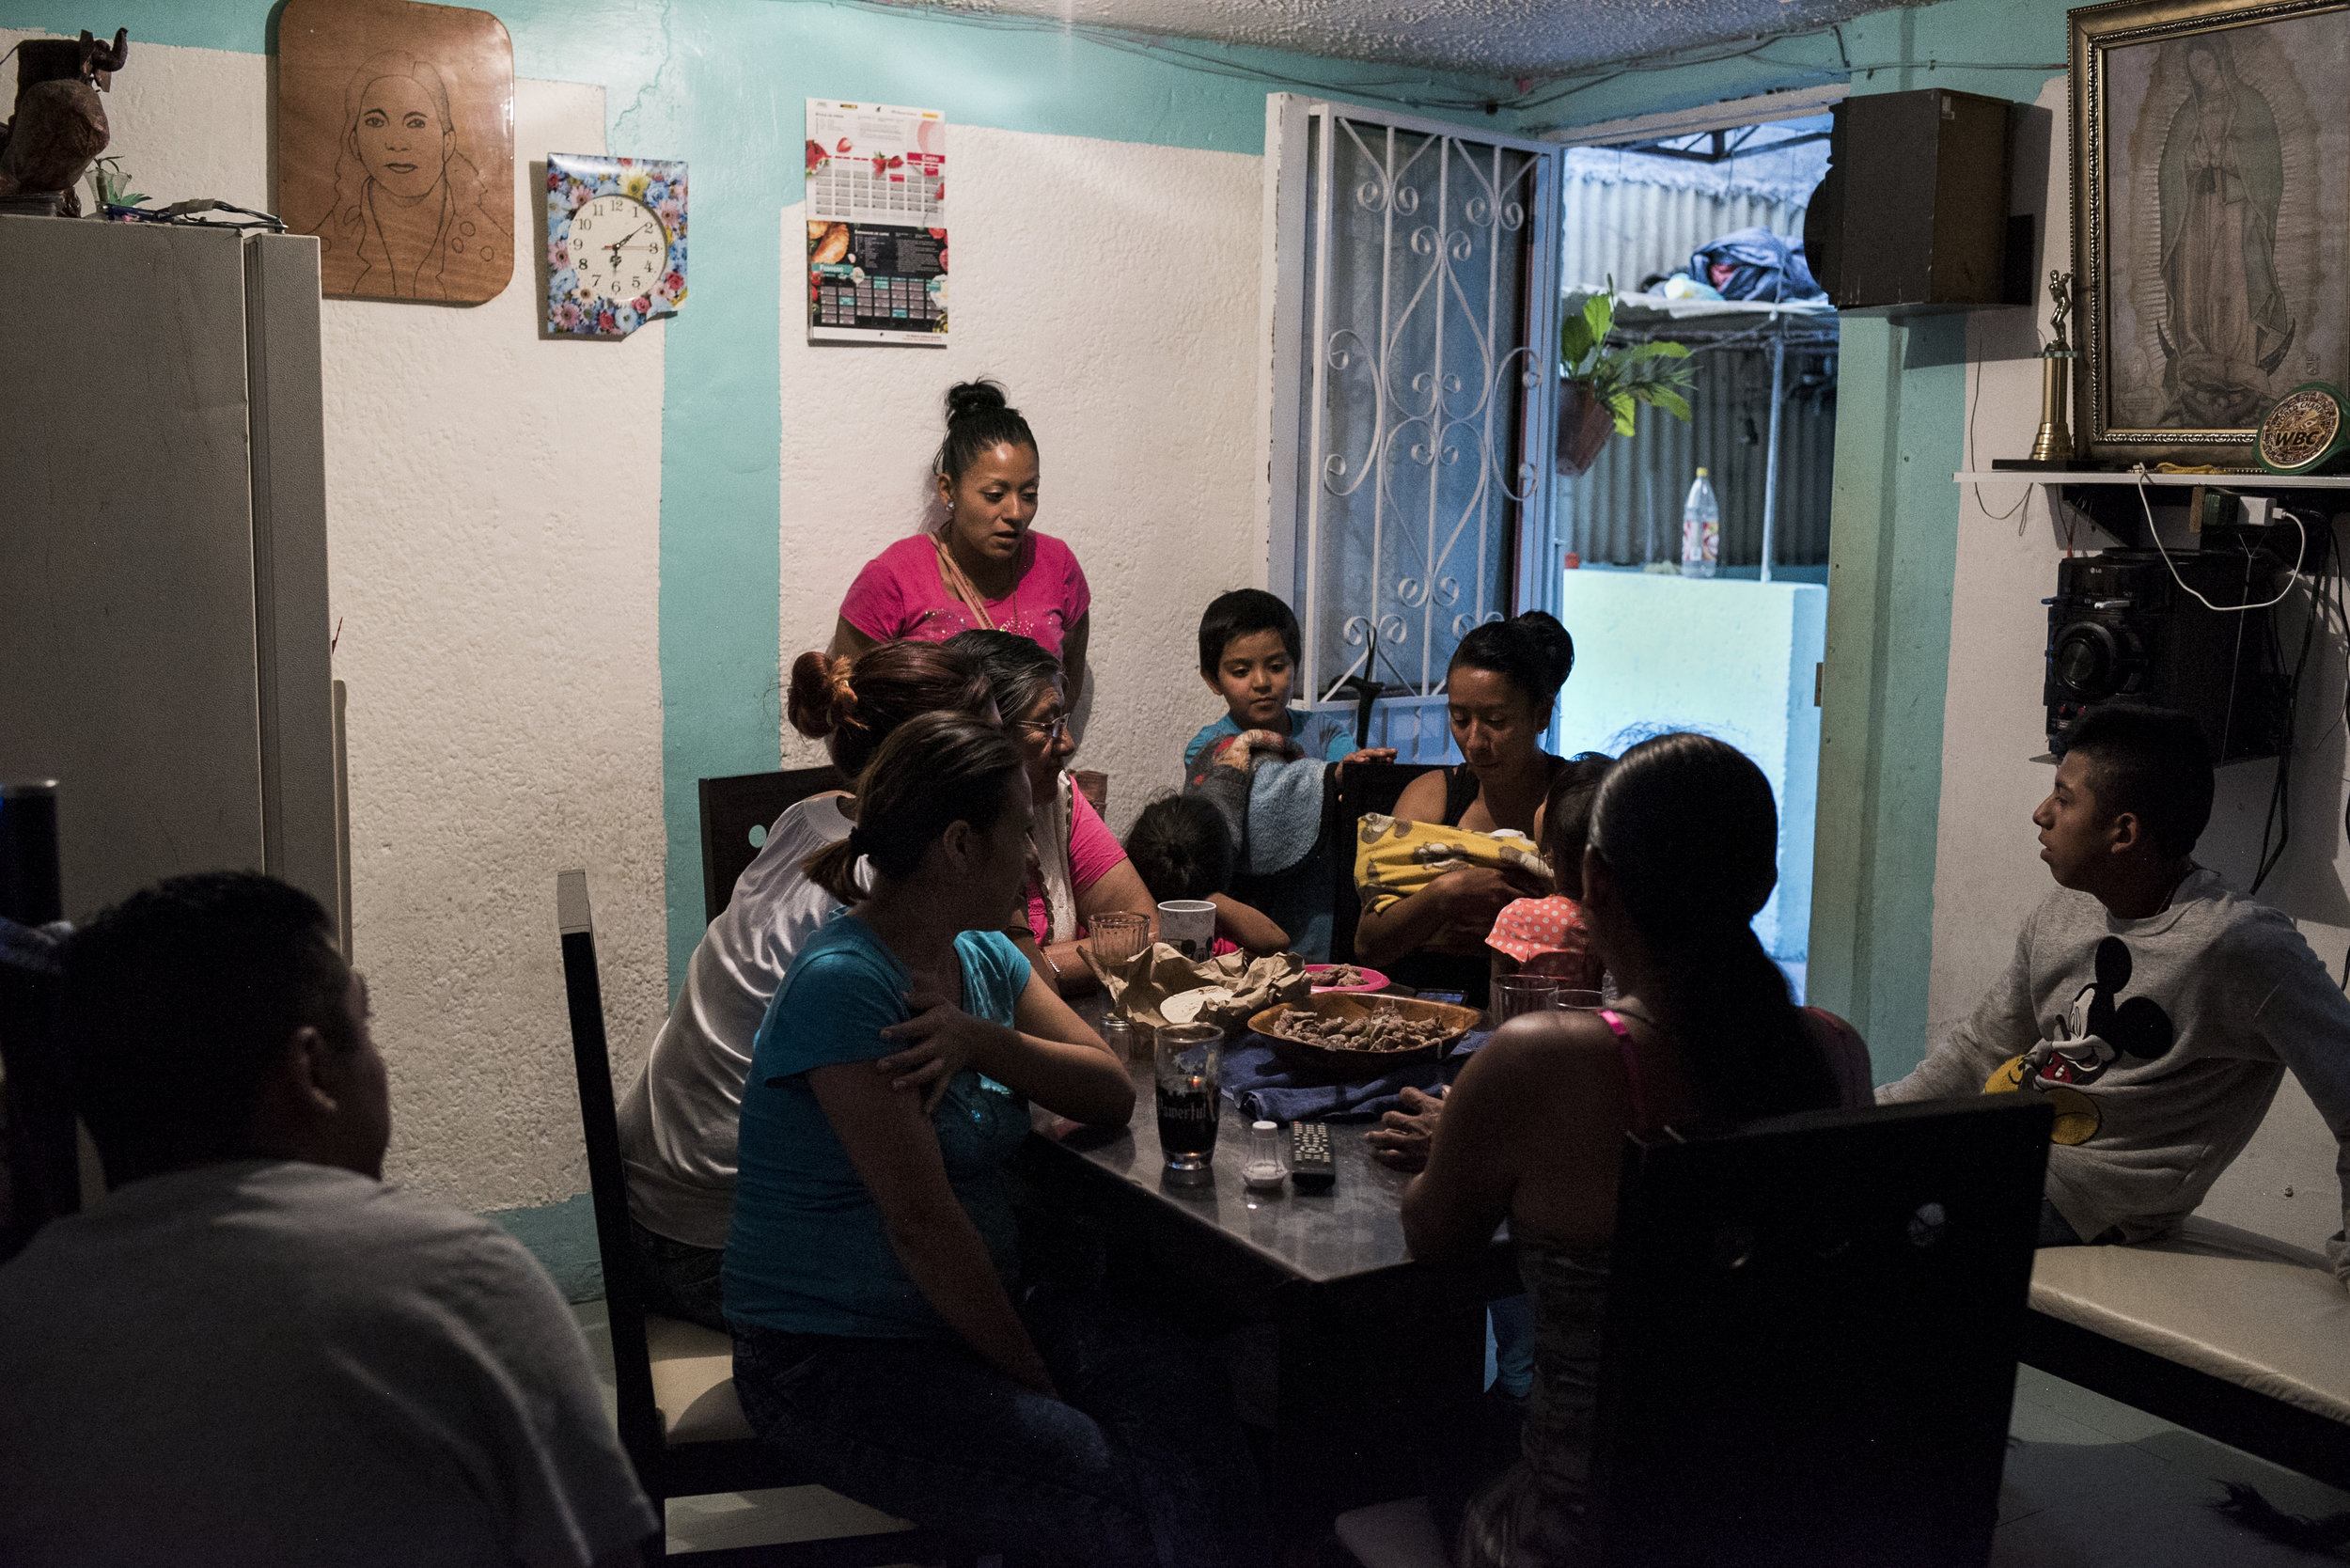 Pancho at home with his family and neighbors.